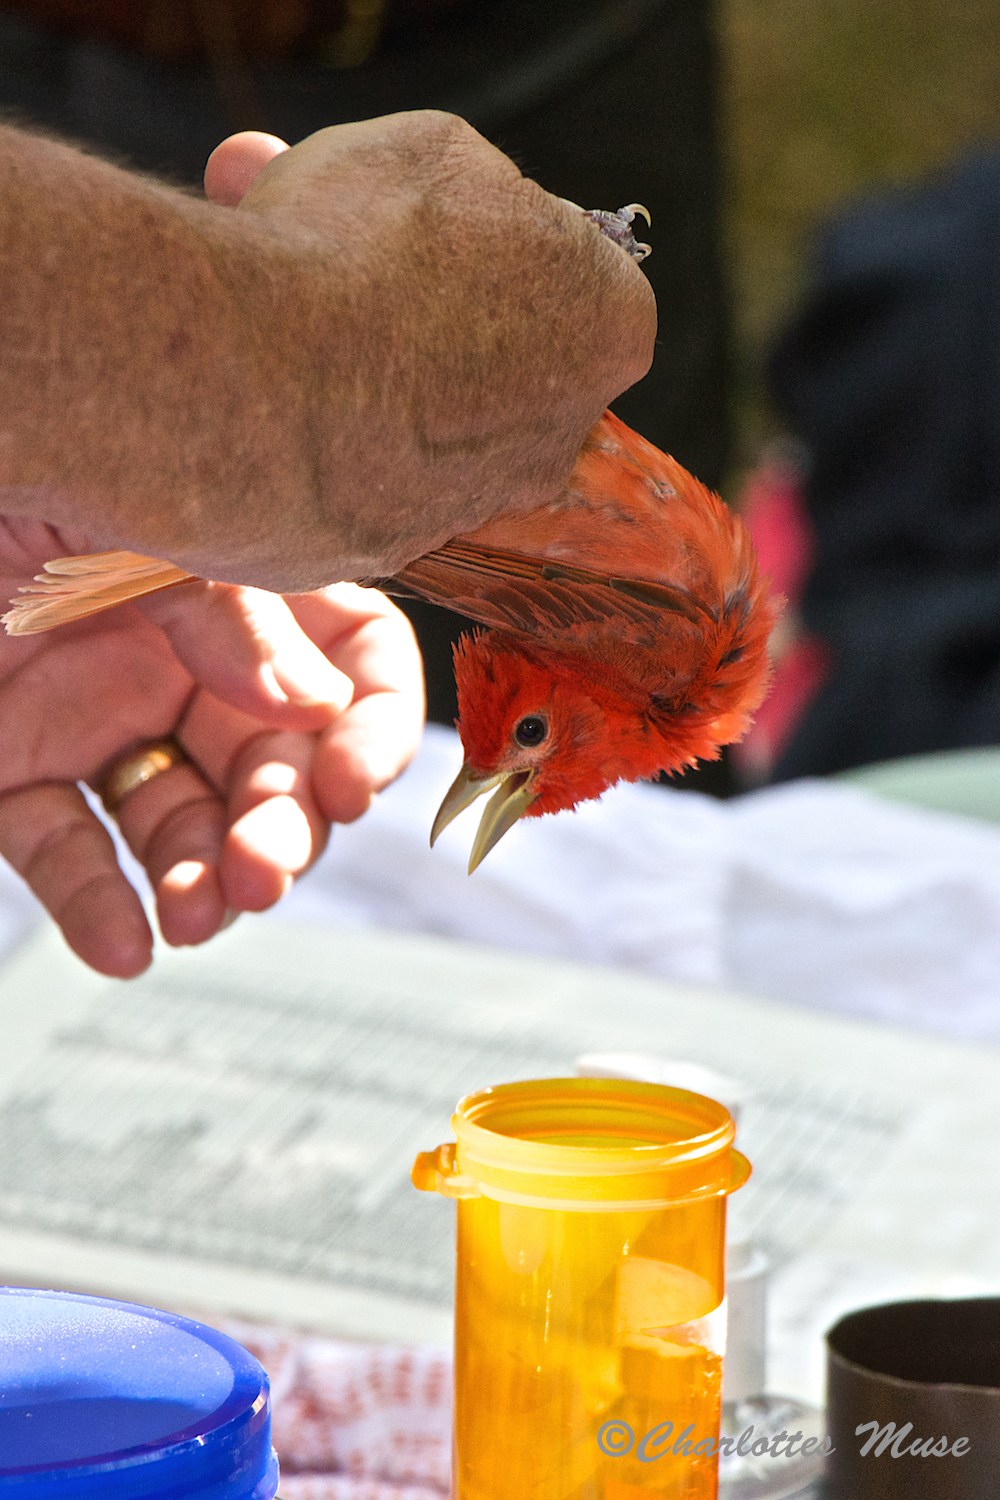 Birds are carefully placed, head down, into a small container and then weighed.